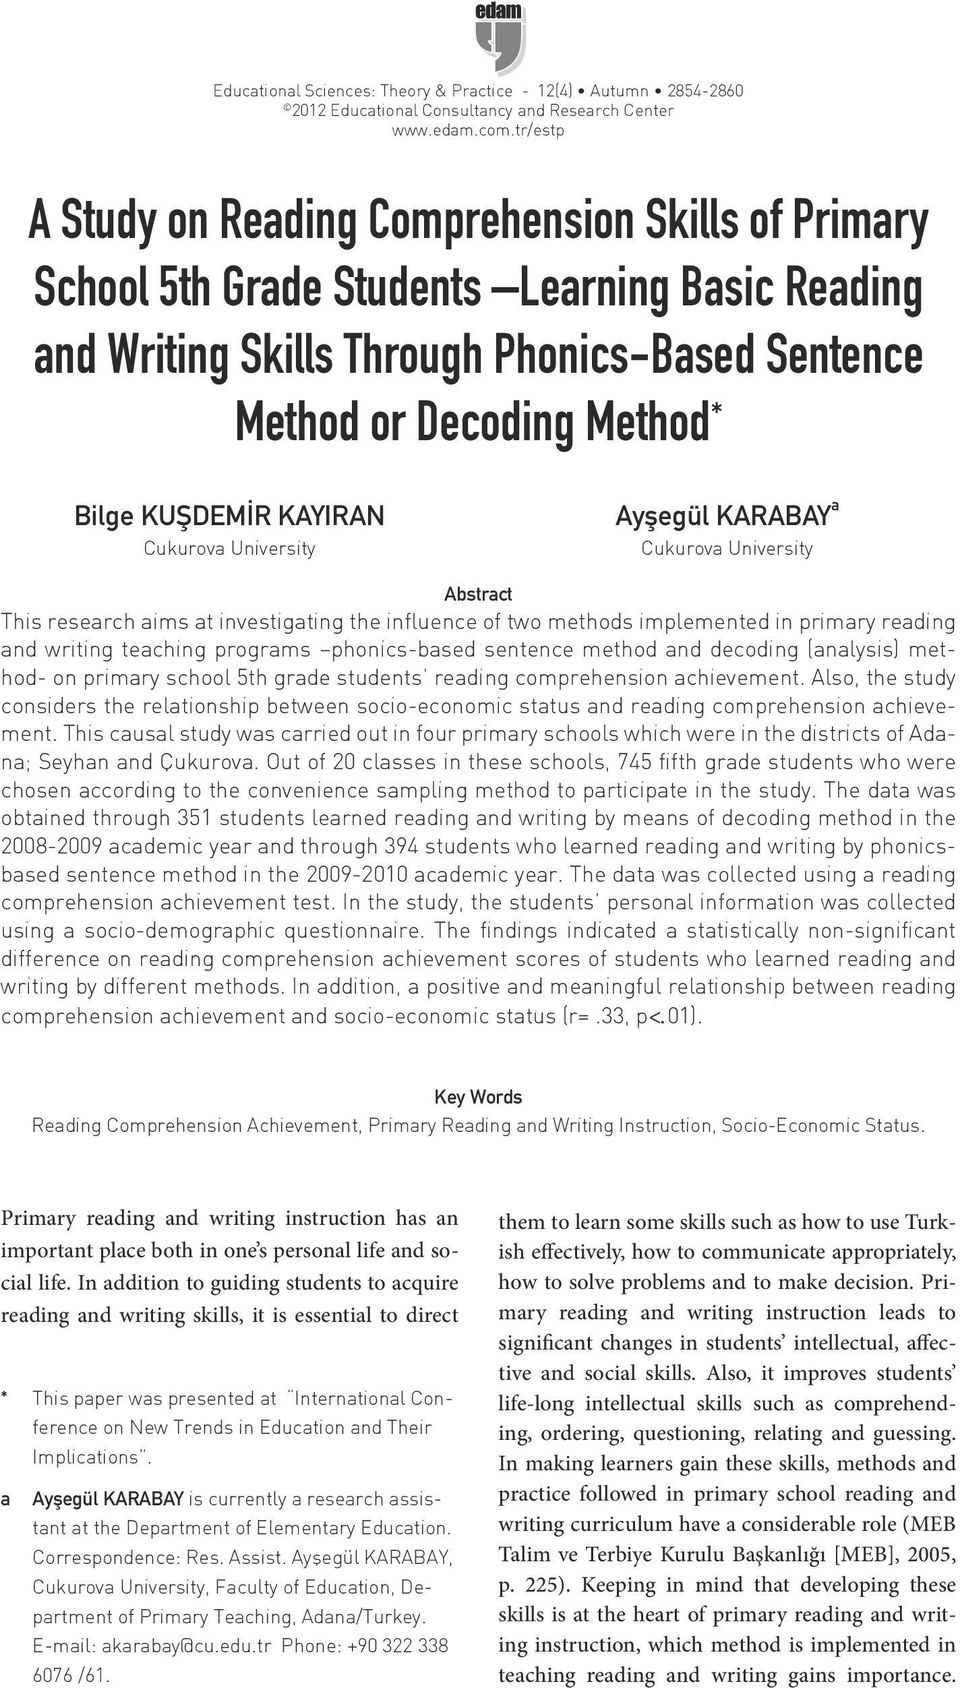 KUŞDEMİR KAYIRAN Cukurova University Ayşegül KARABAY a Cukurova University Abstract This research aims at investigating the influence of two methods implemented in primary reading and writing